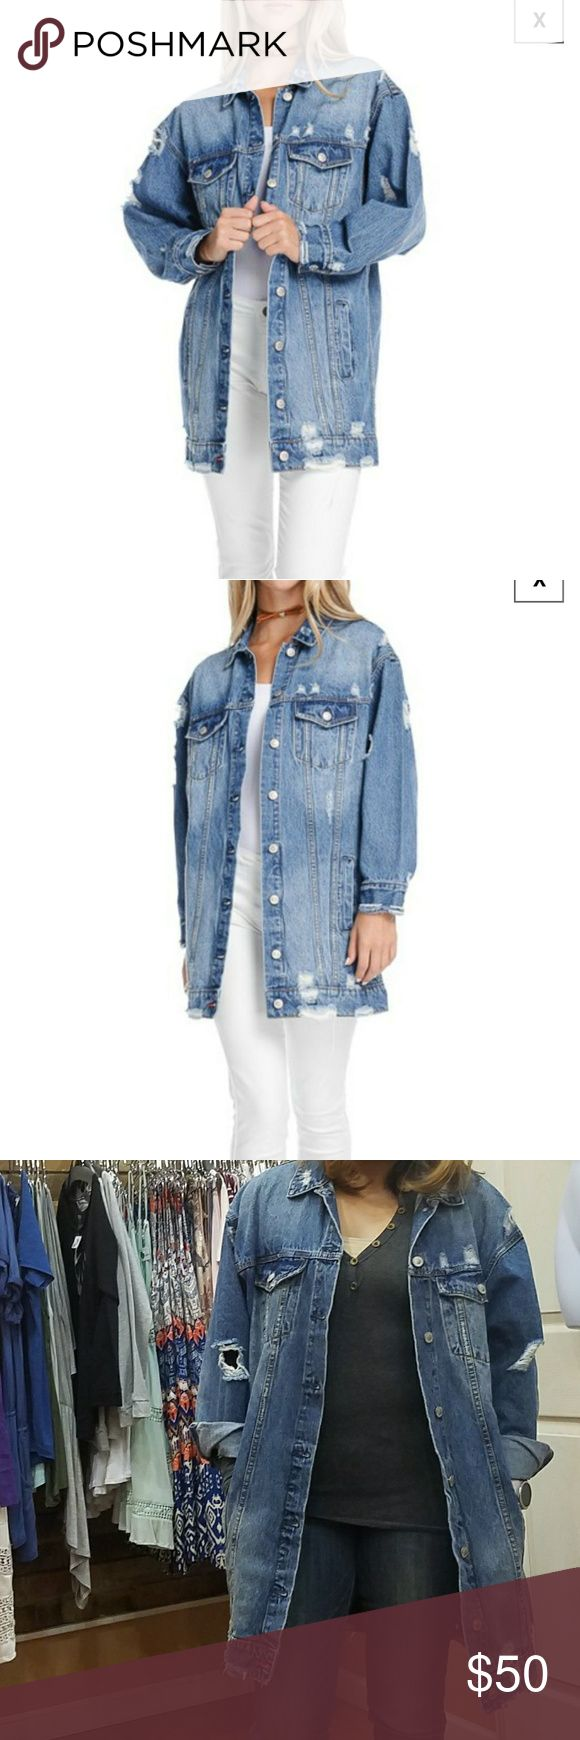 Apricot Lane - Fiore - Oversized jean jacket Distressed oversized denim jacket. I fit a size small but the one I have on is a L. Unique and trendy. Only worn twice. $50 obo. Great with shorts and tank top, jeans or leggings... versatile. Fiore Jackets & Coats Jean Jackets